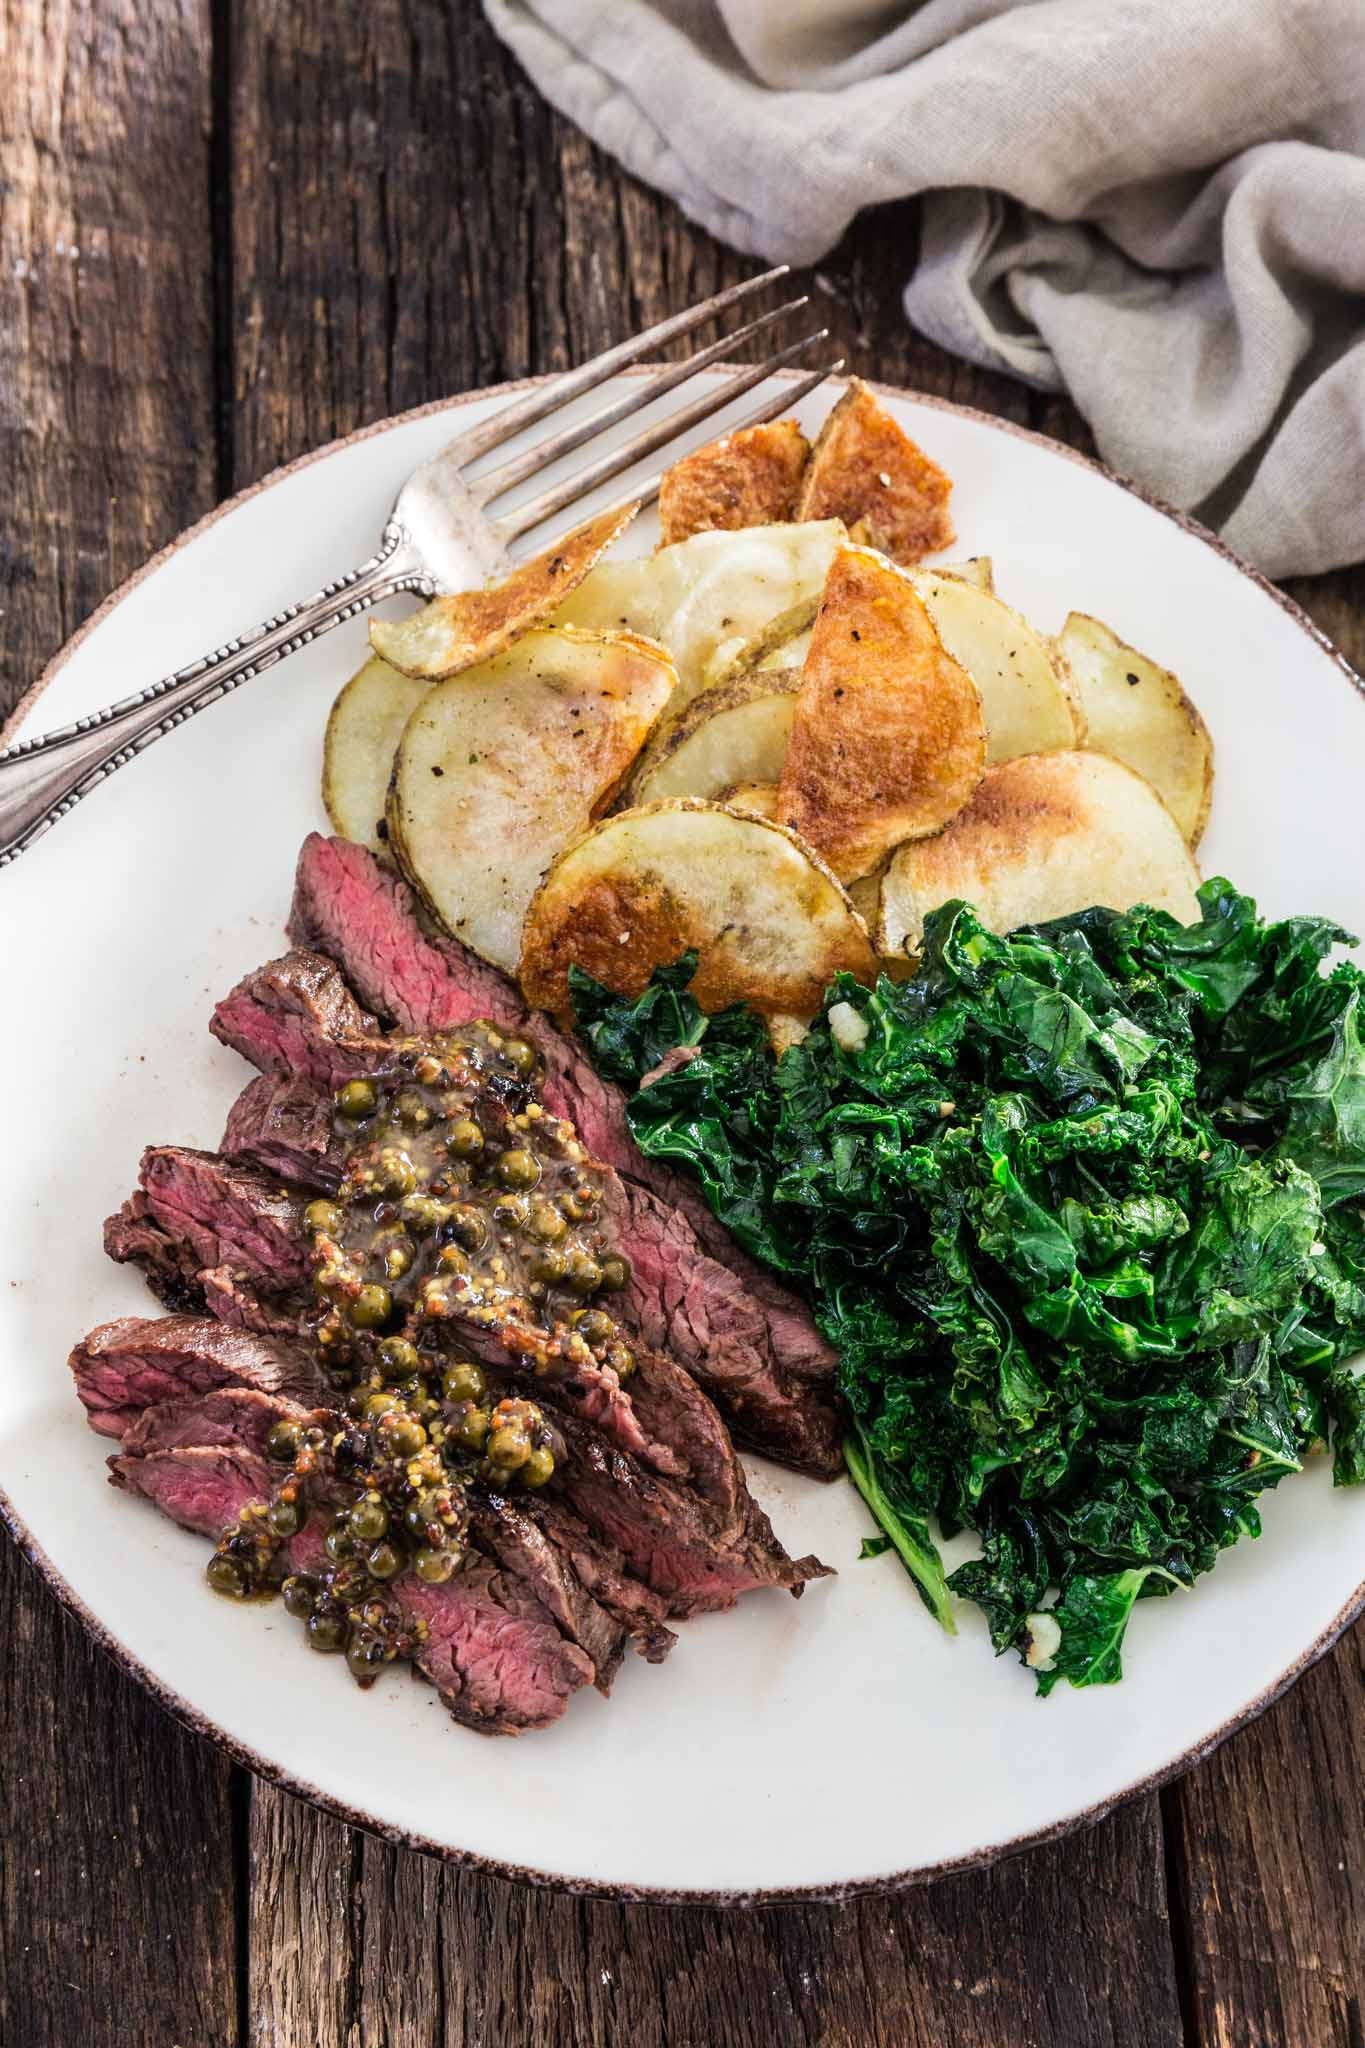 Steaks with Green Peppercorn Sauce | www.oliviascuisine.com | If you're looking for an impressive meal that is easy enough to put together on a weekday, this Steak with Green Peppercorn Sauce is the answer! The steak is cooked to perfection and served with a silky mustard-y peppercorn sauce, kale and roasted potatoes.